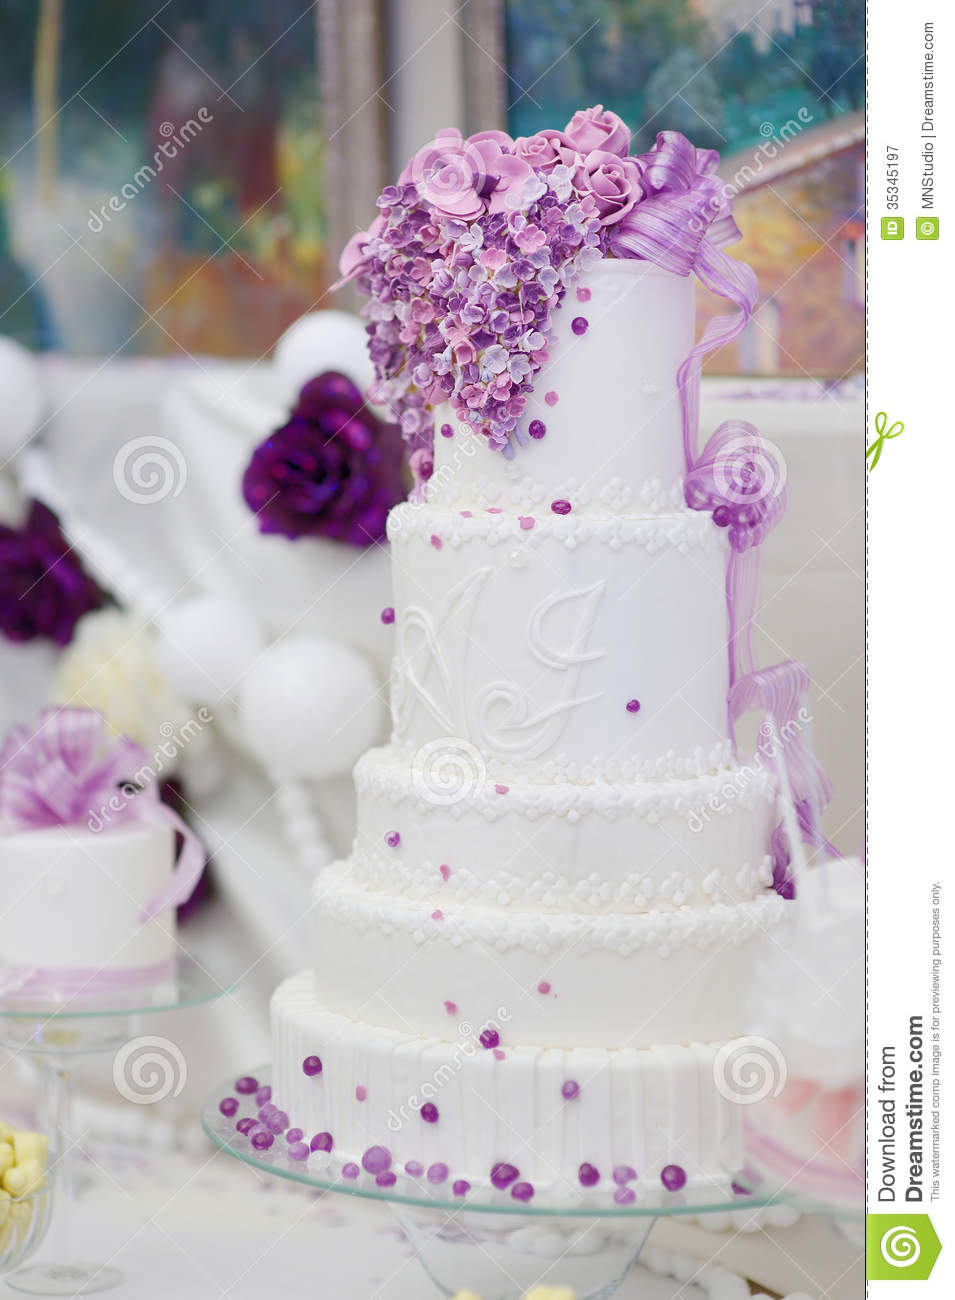 White Wedding Cake Decorated With Purple Flowers Royalty Free Stock ...